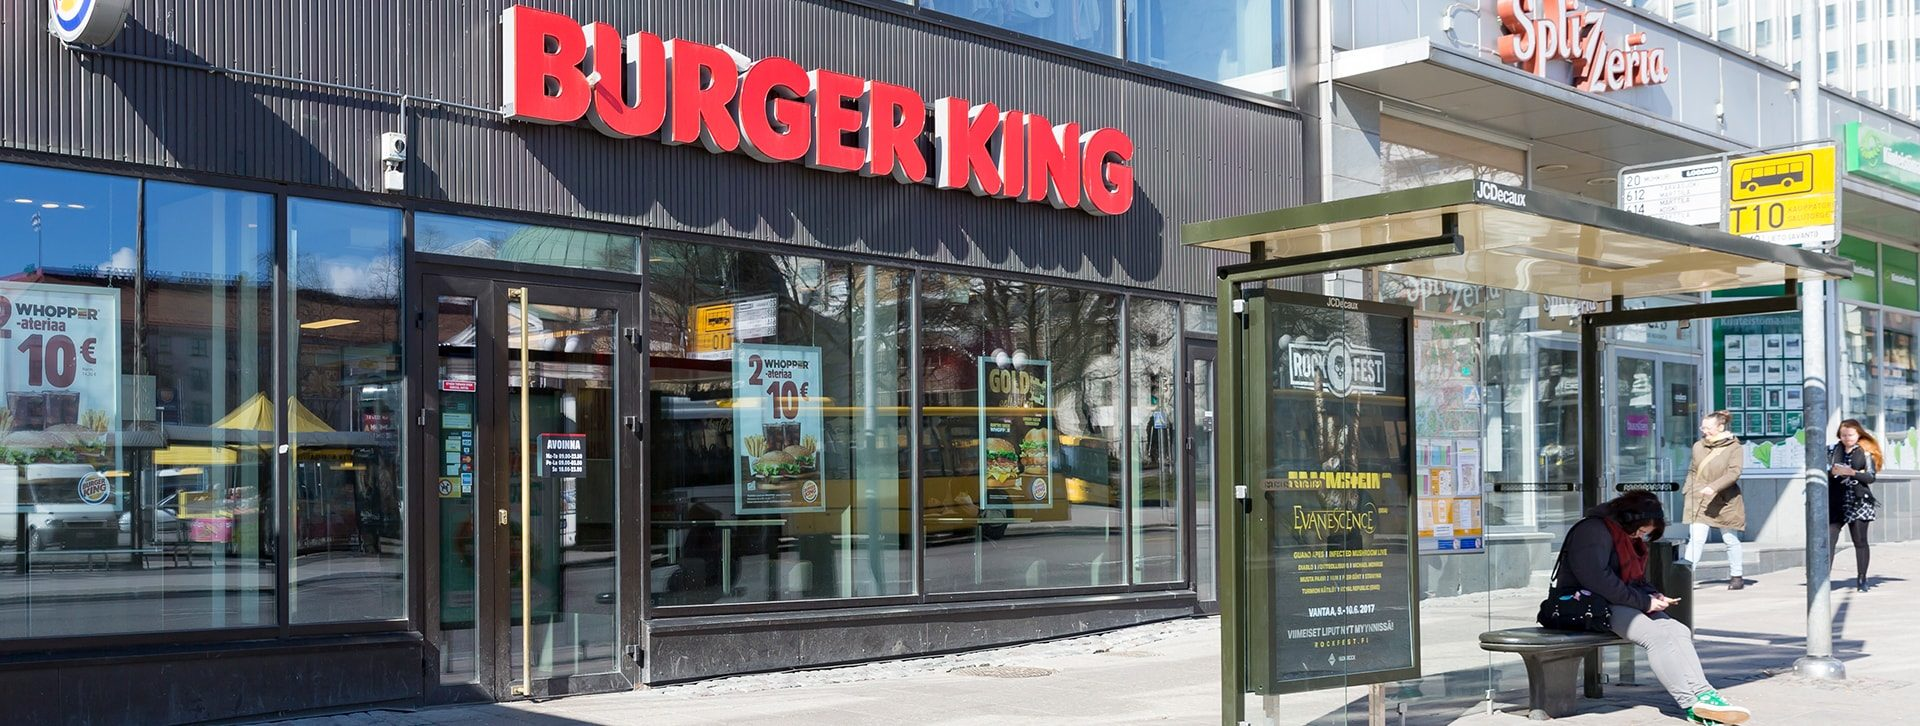 hansakortteli_burger_king